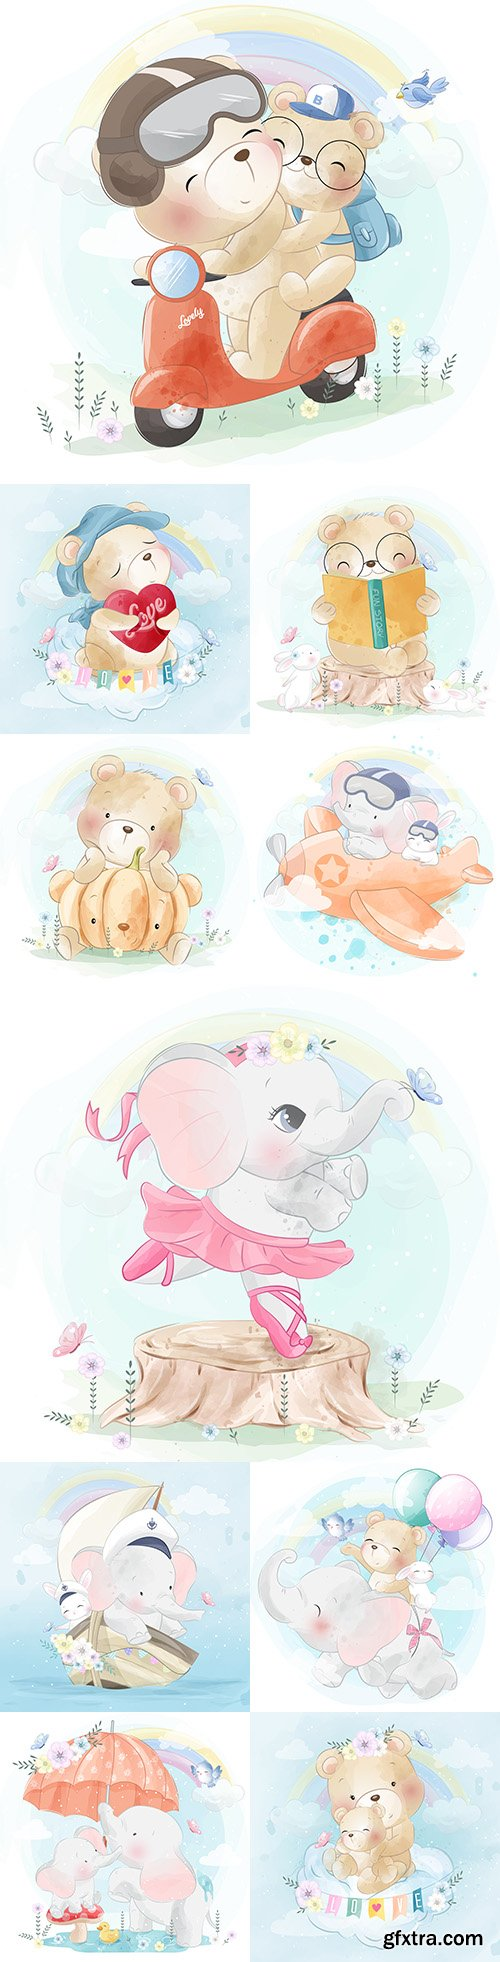 Baby elephant and bear funny drawn illustrations